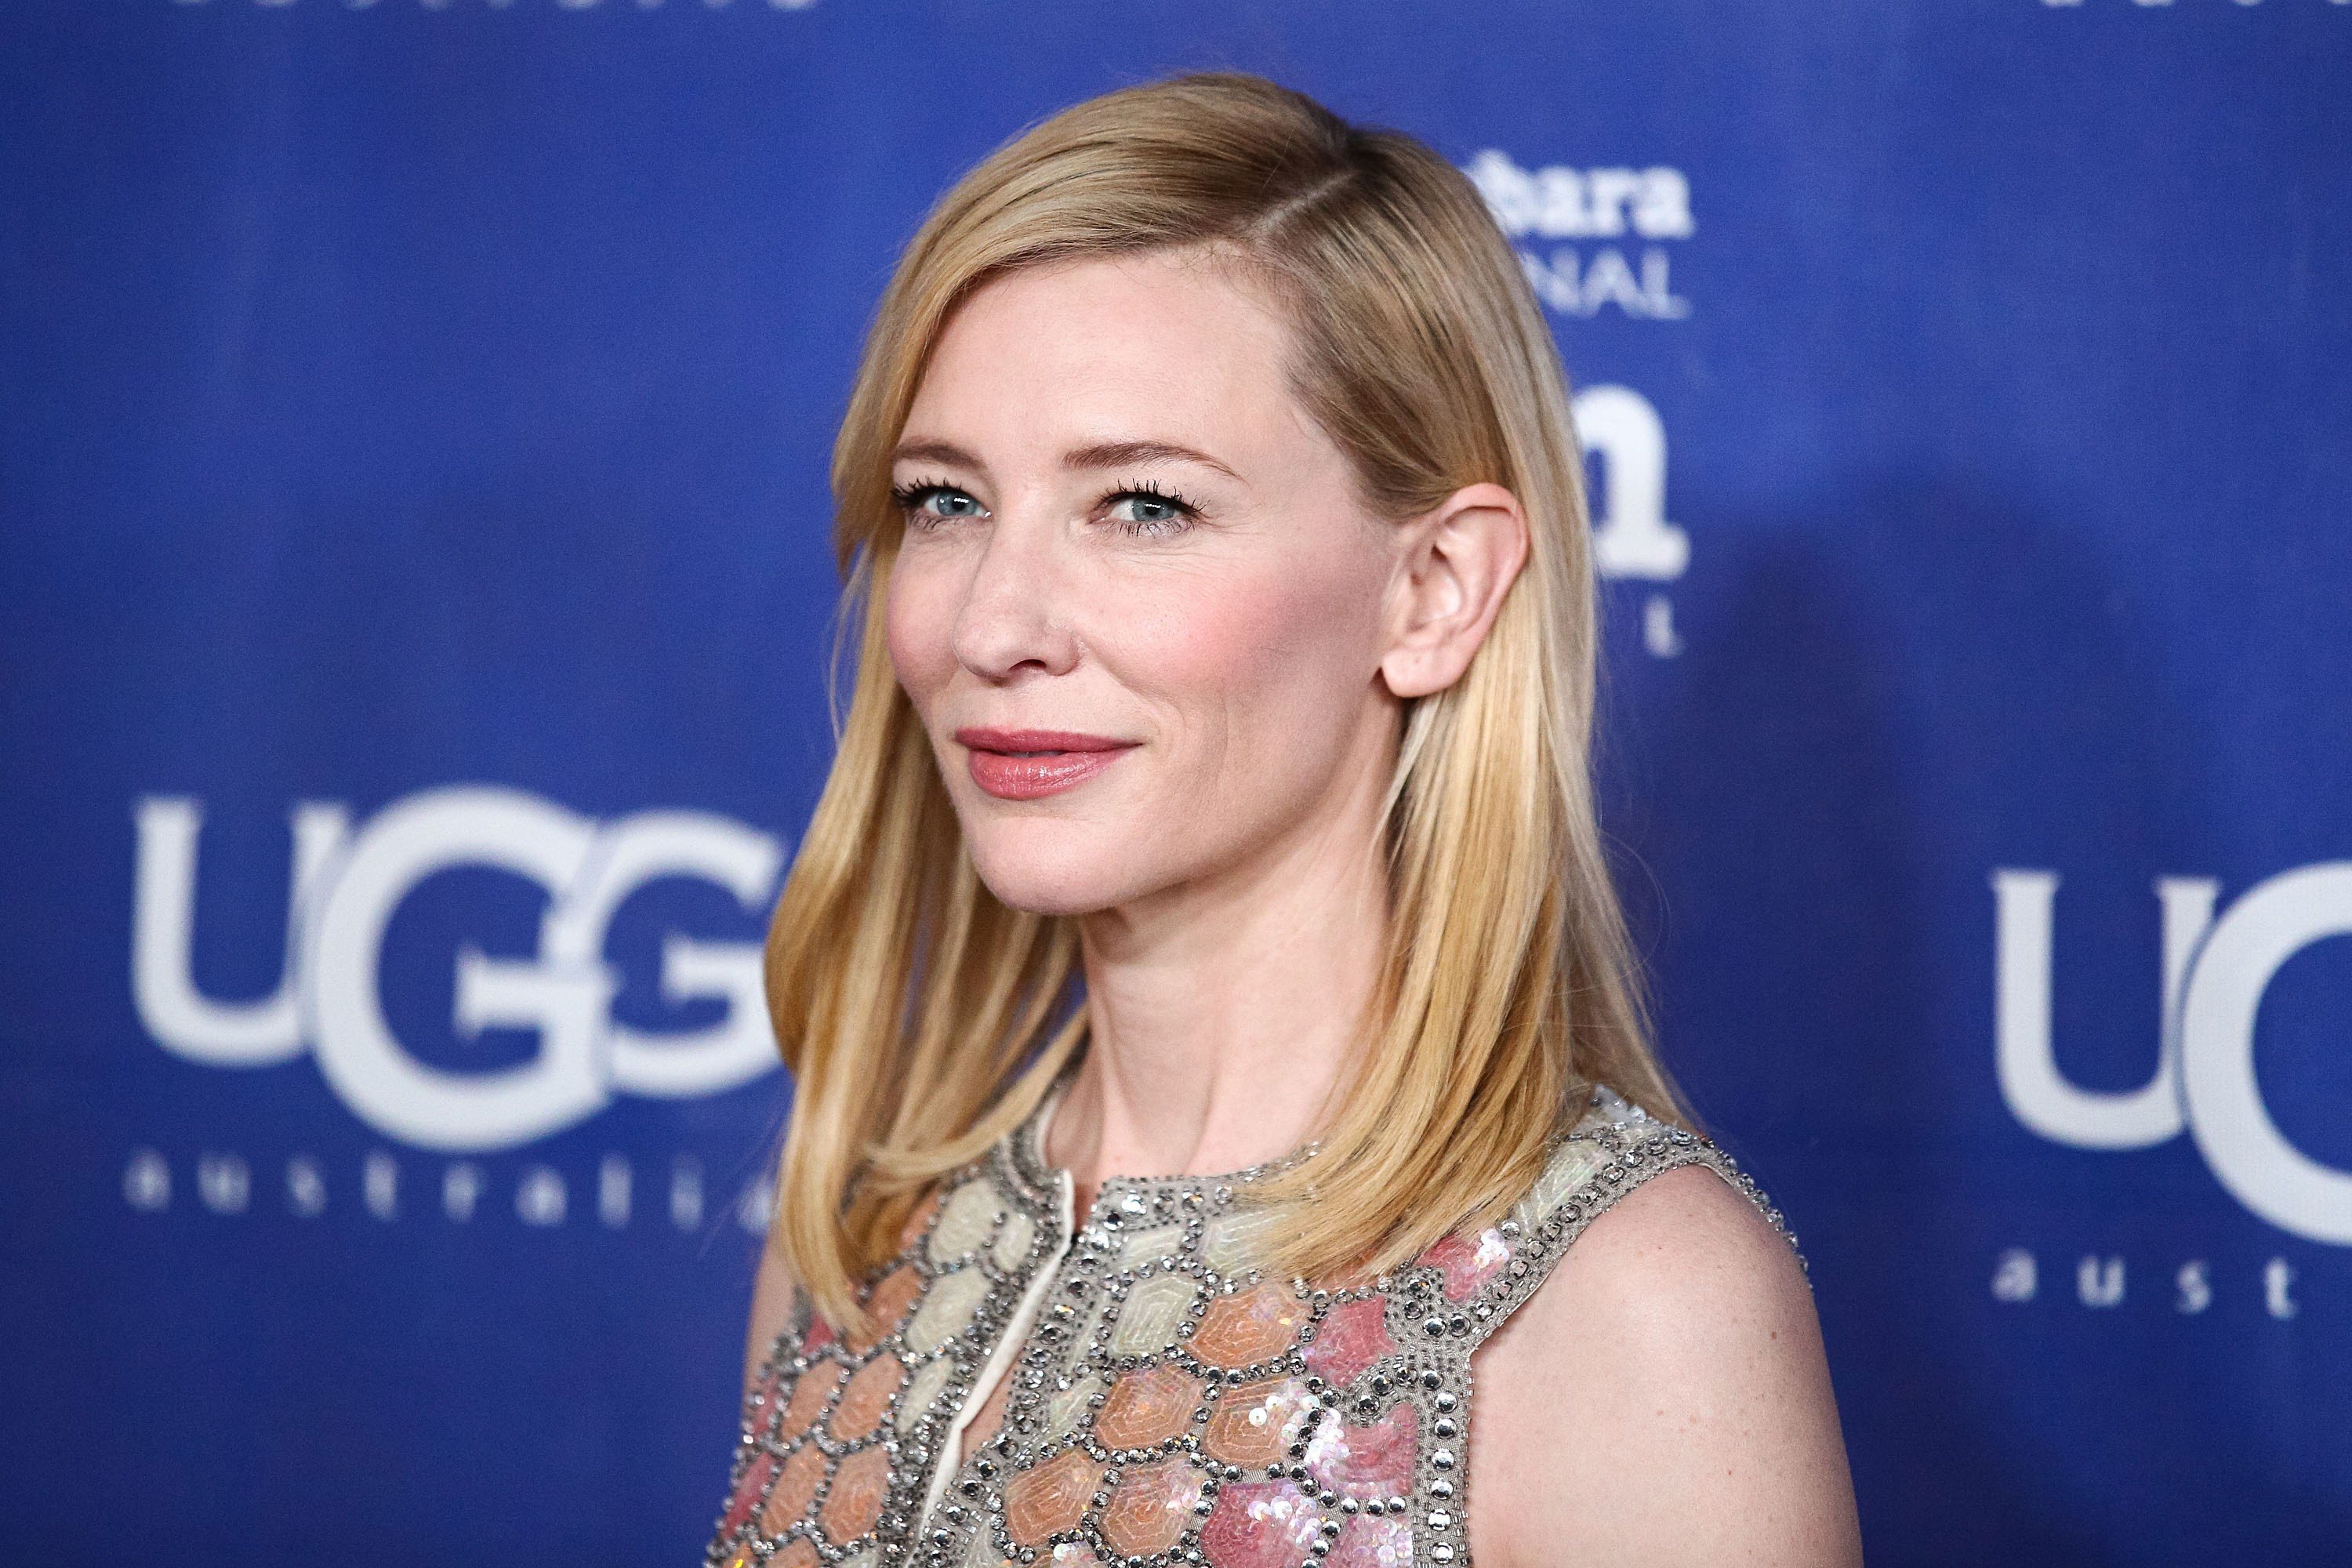 Actress Cate Blanchett attends the presentation of the Outstanding Performer Of The Year Award at the Arlington Theatre during the 29th Santa Barbara International Film Festival on February 1, 2014.